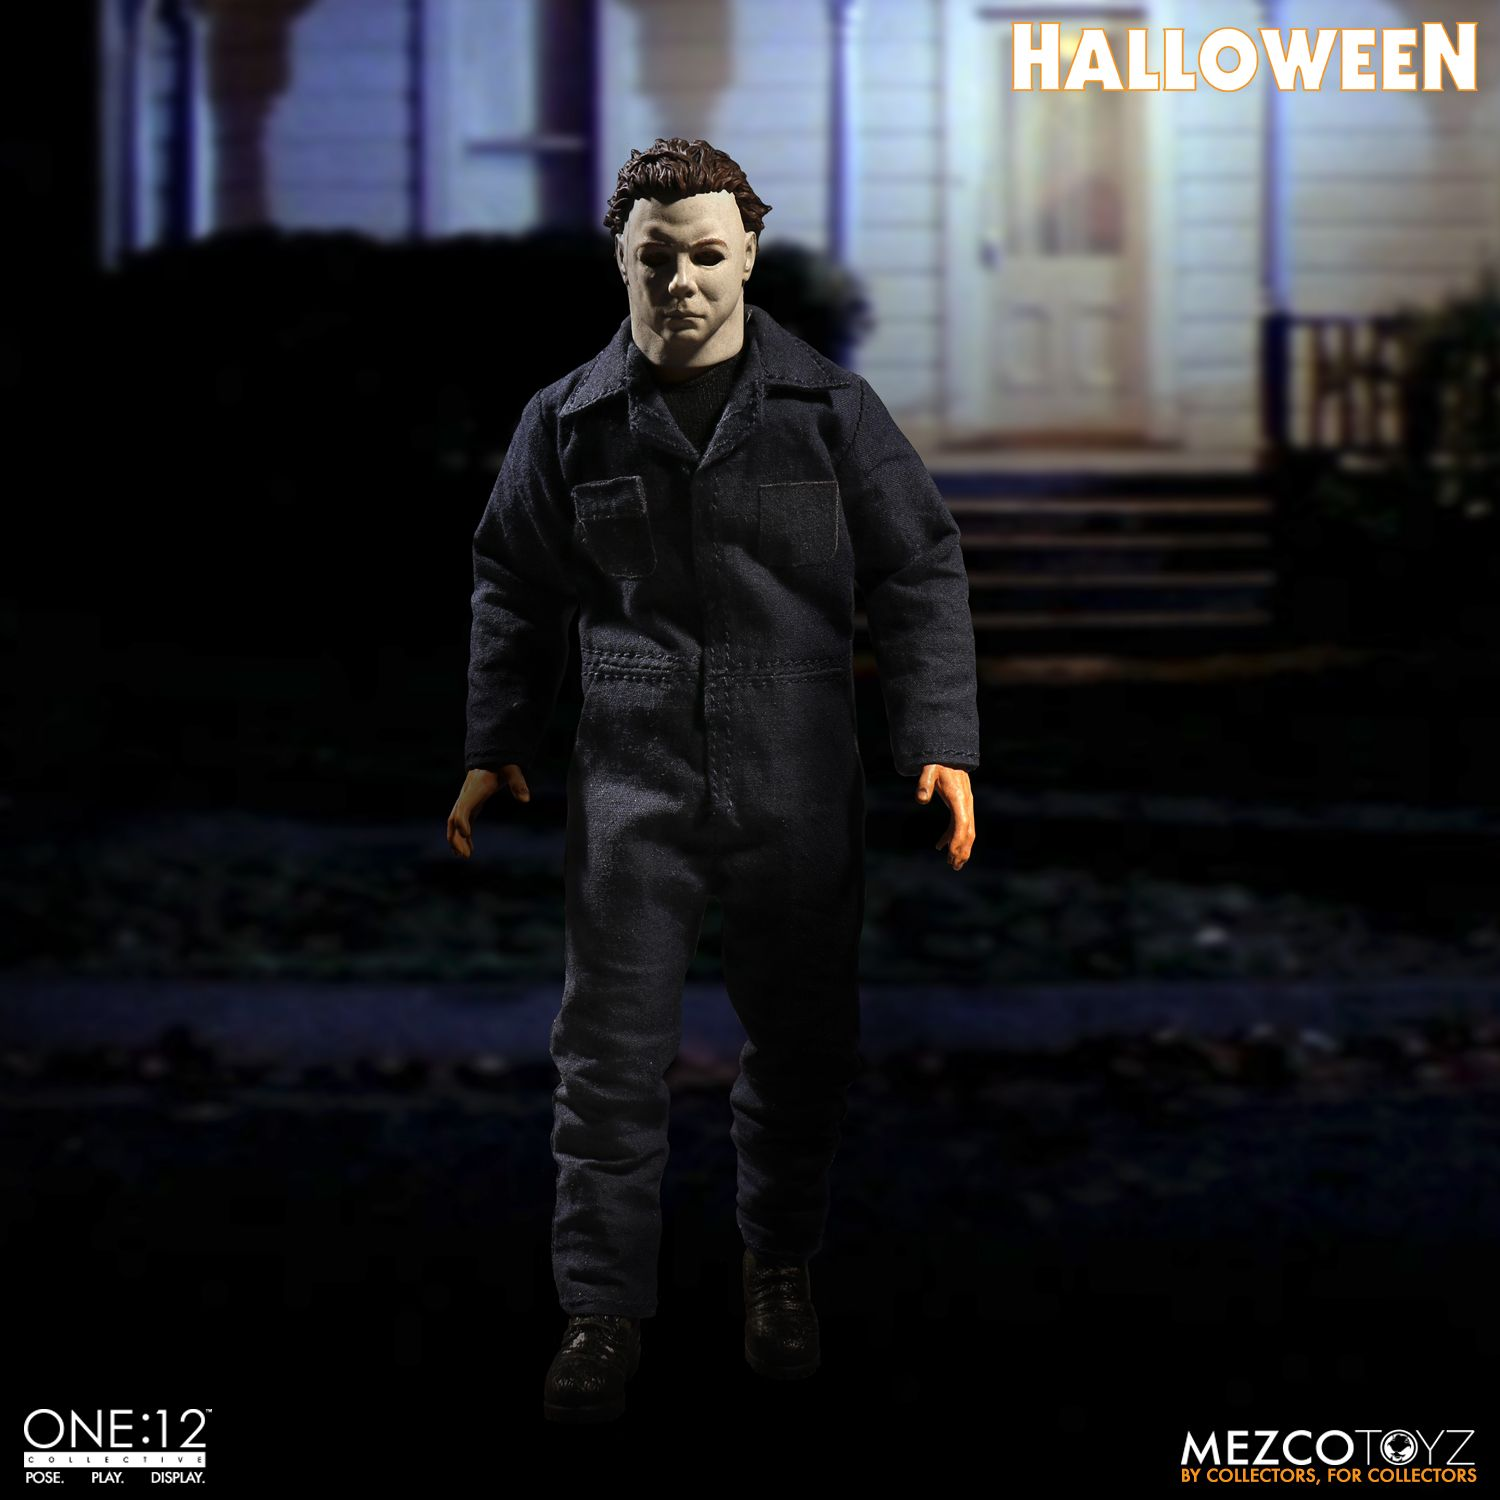 Mezco's Michael Myers One:12 Collective Figure Update ...